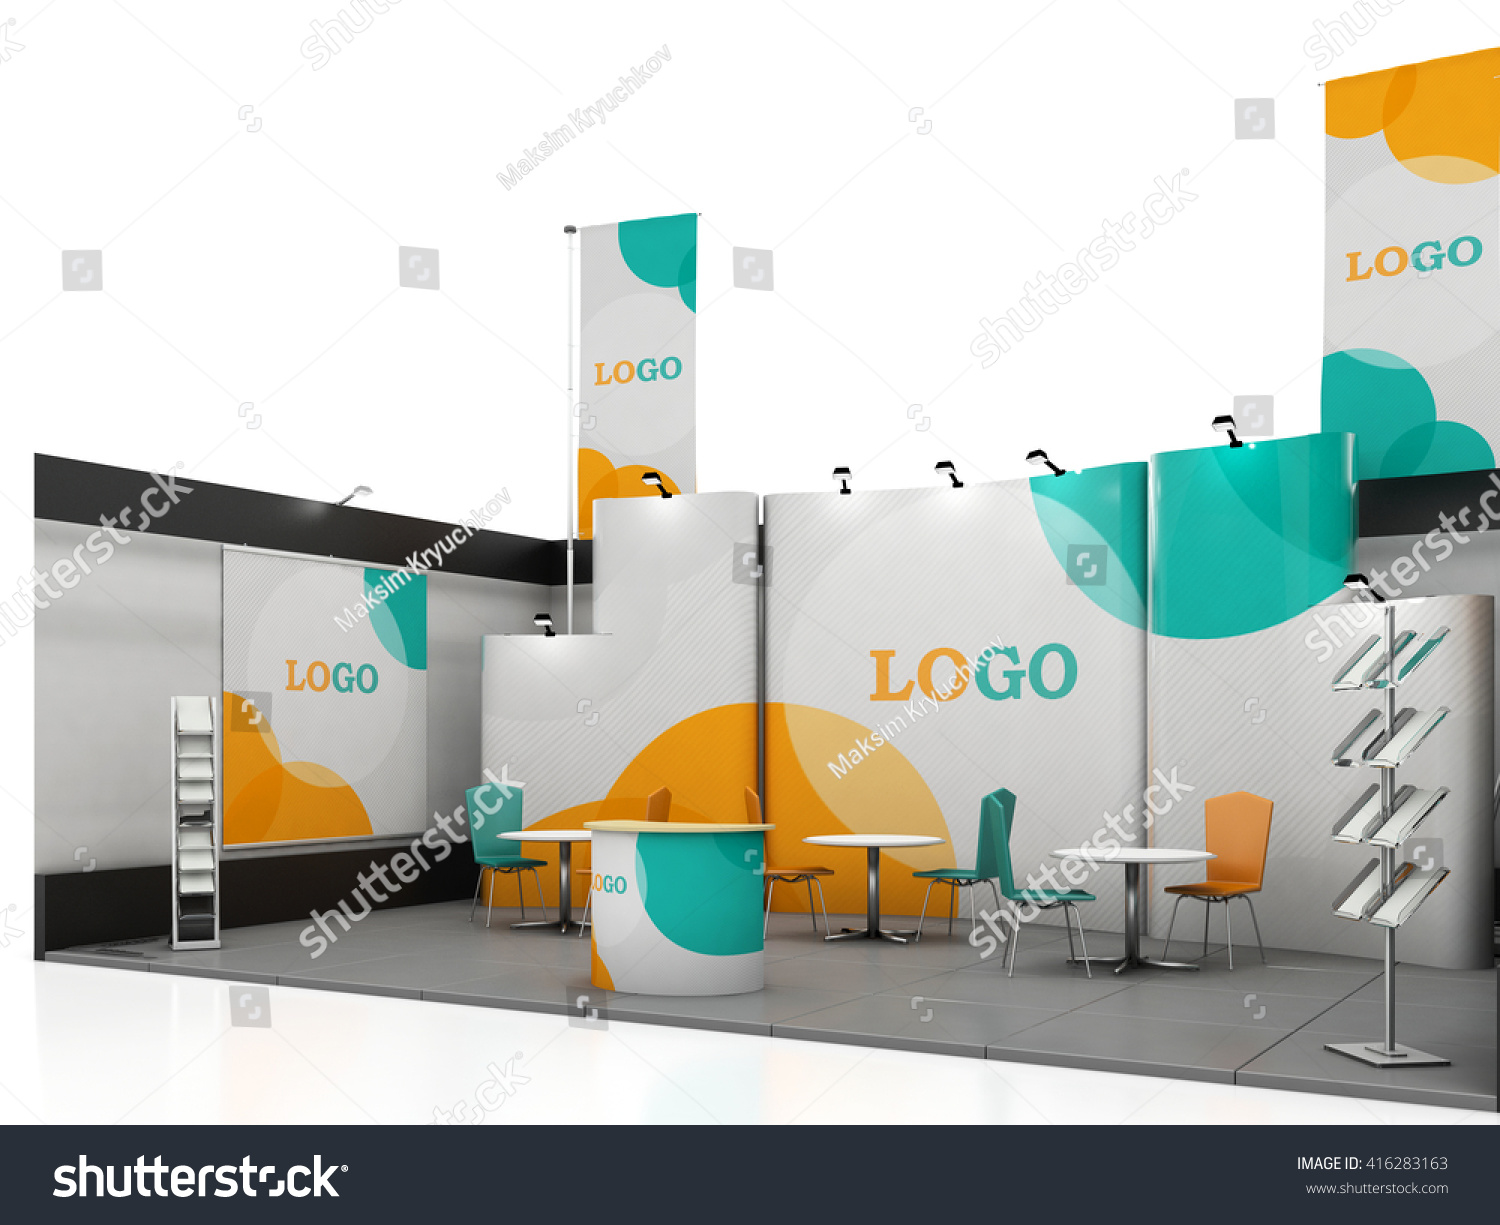 Exhibition Stand Design Illustrator : Blank creative exhibition stand design color stock